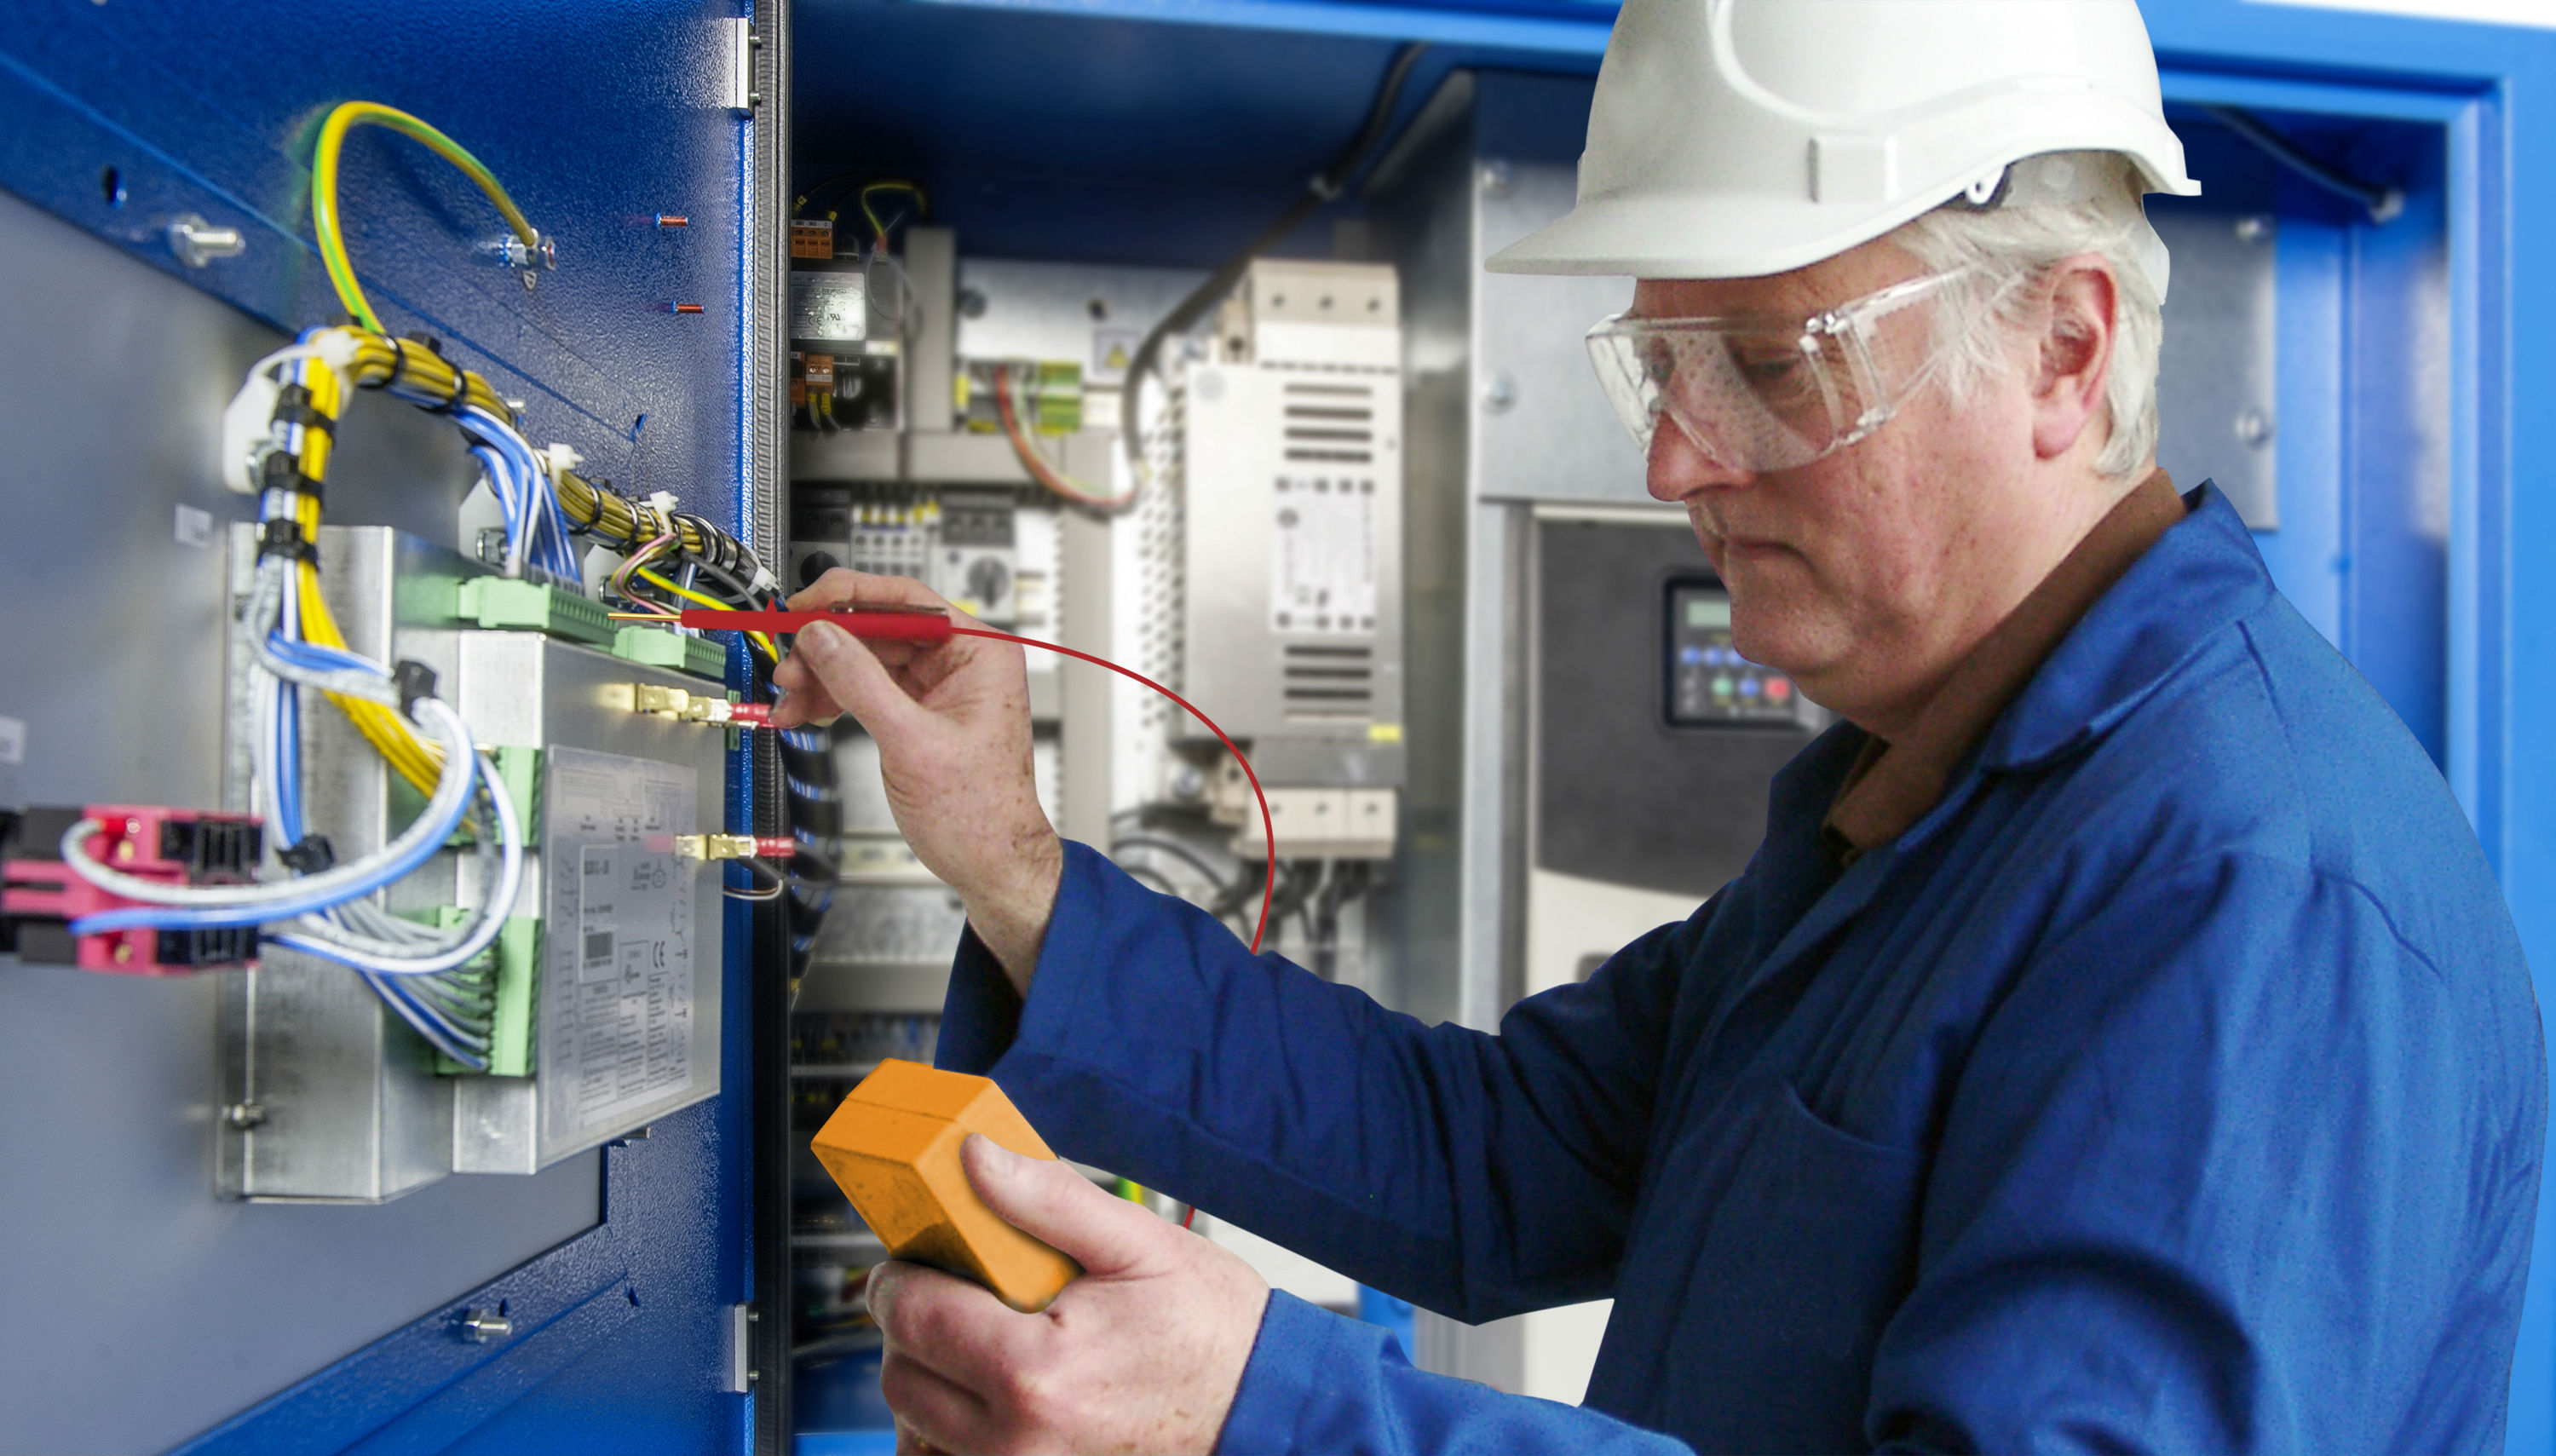 Service Engineer Electrical Testing